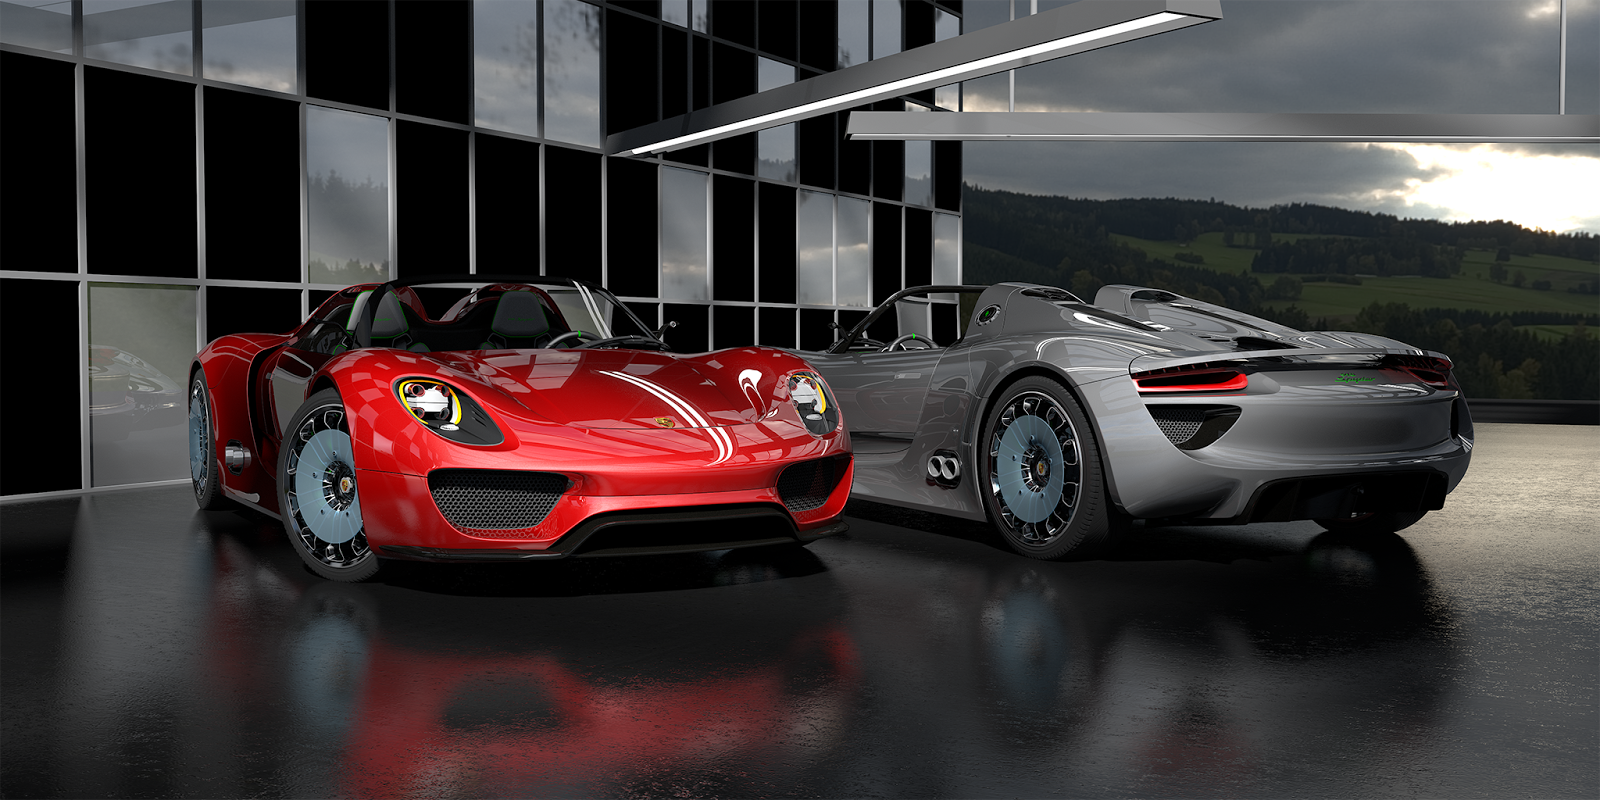 Porsche_918_flyer_image_red_silver_2k